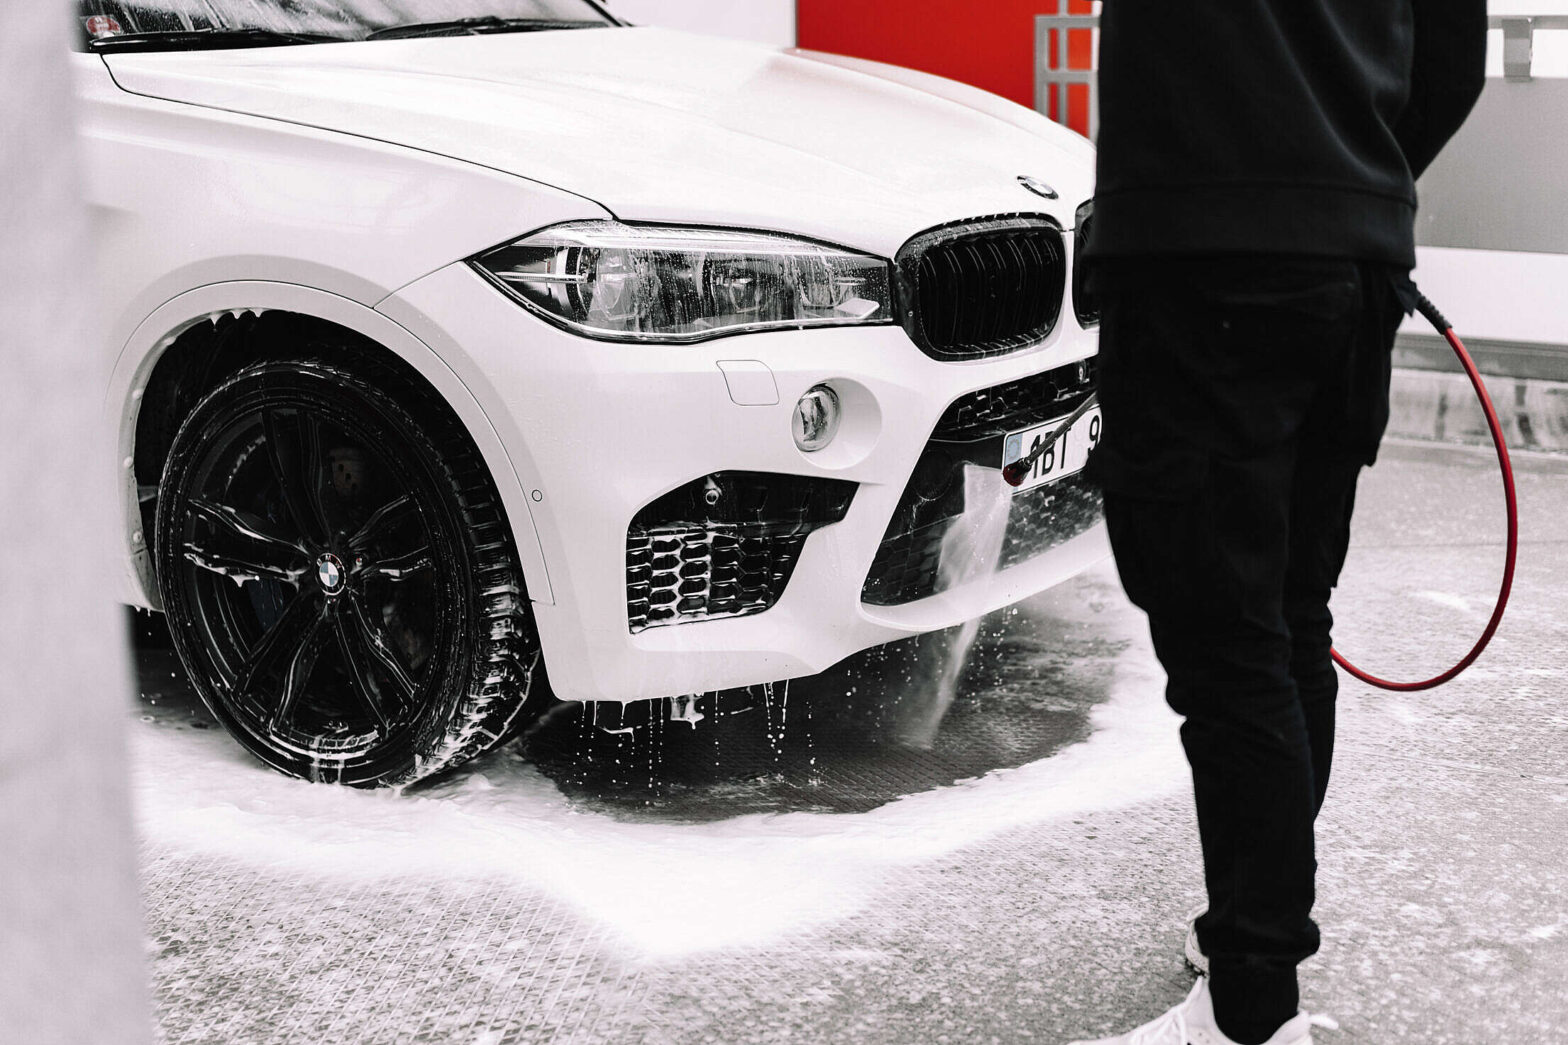 6 Important Things to Consider When Washing a Car at a Self-Service Car Wash